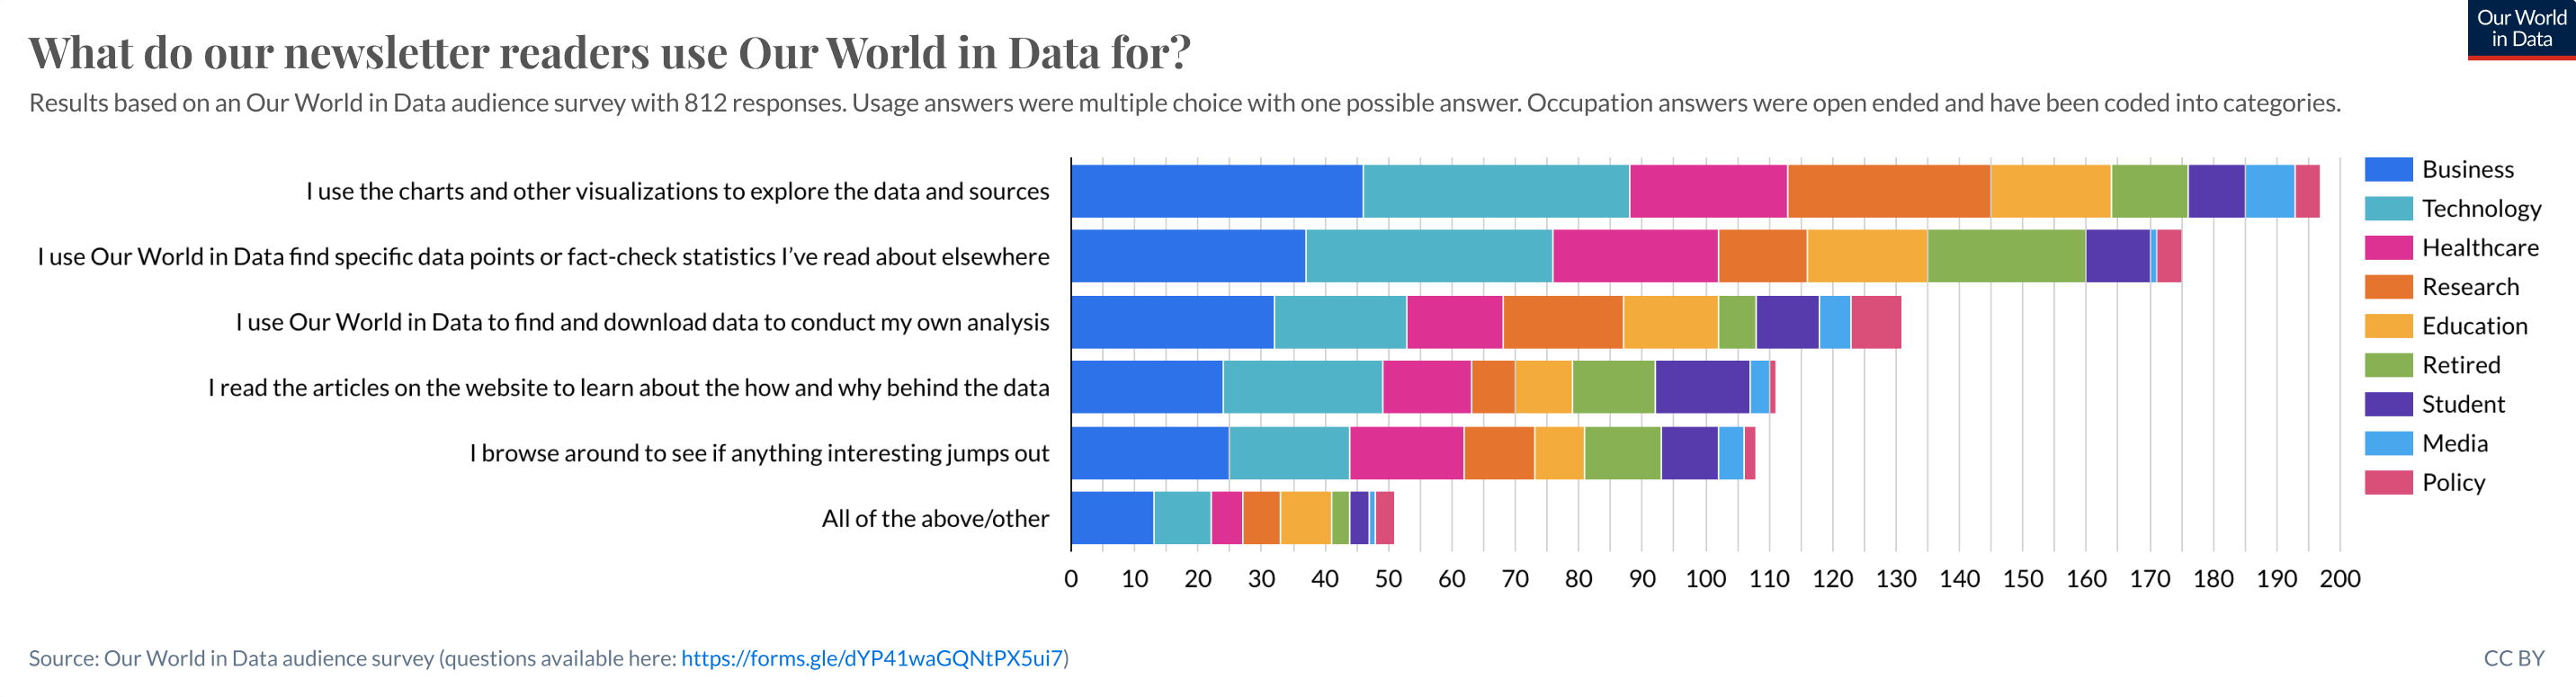 What do our newsletter readers use Our World in Data for?